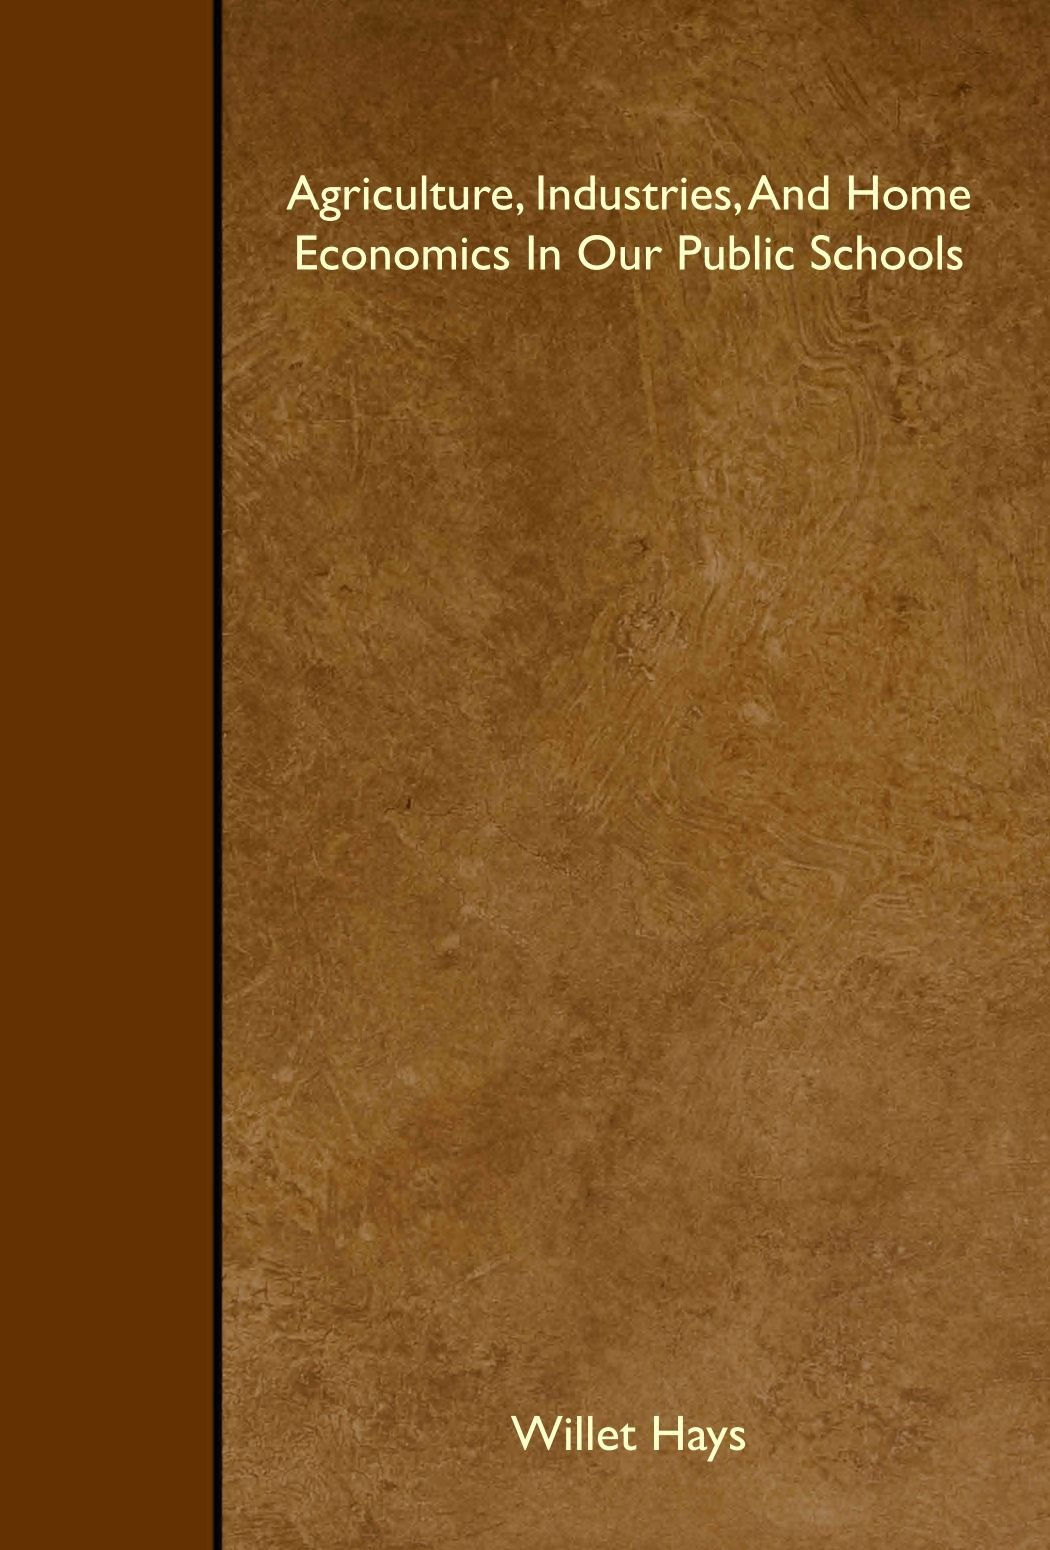 Agriculture, Industries, And Home Economics In Our Public Schools pdf